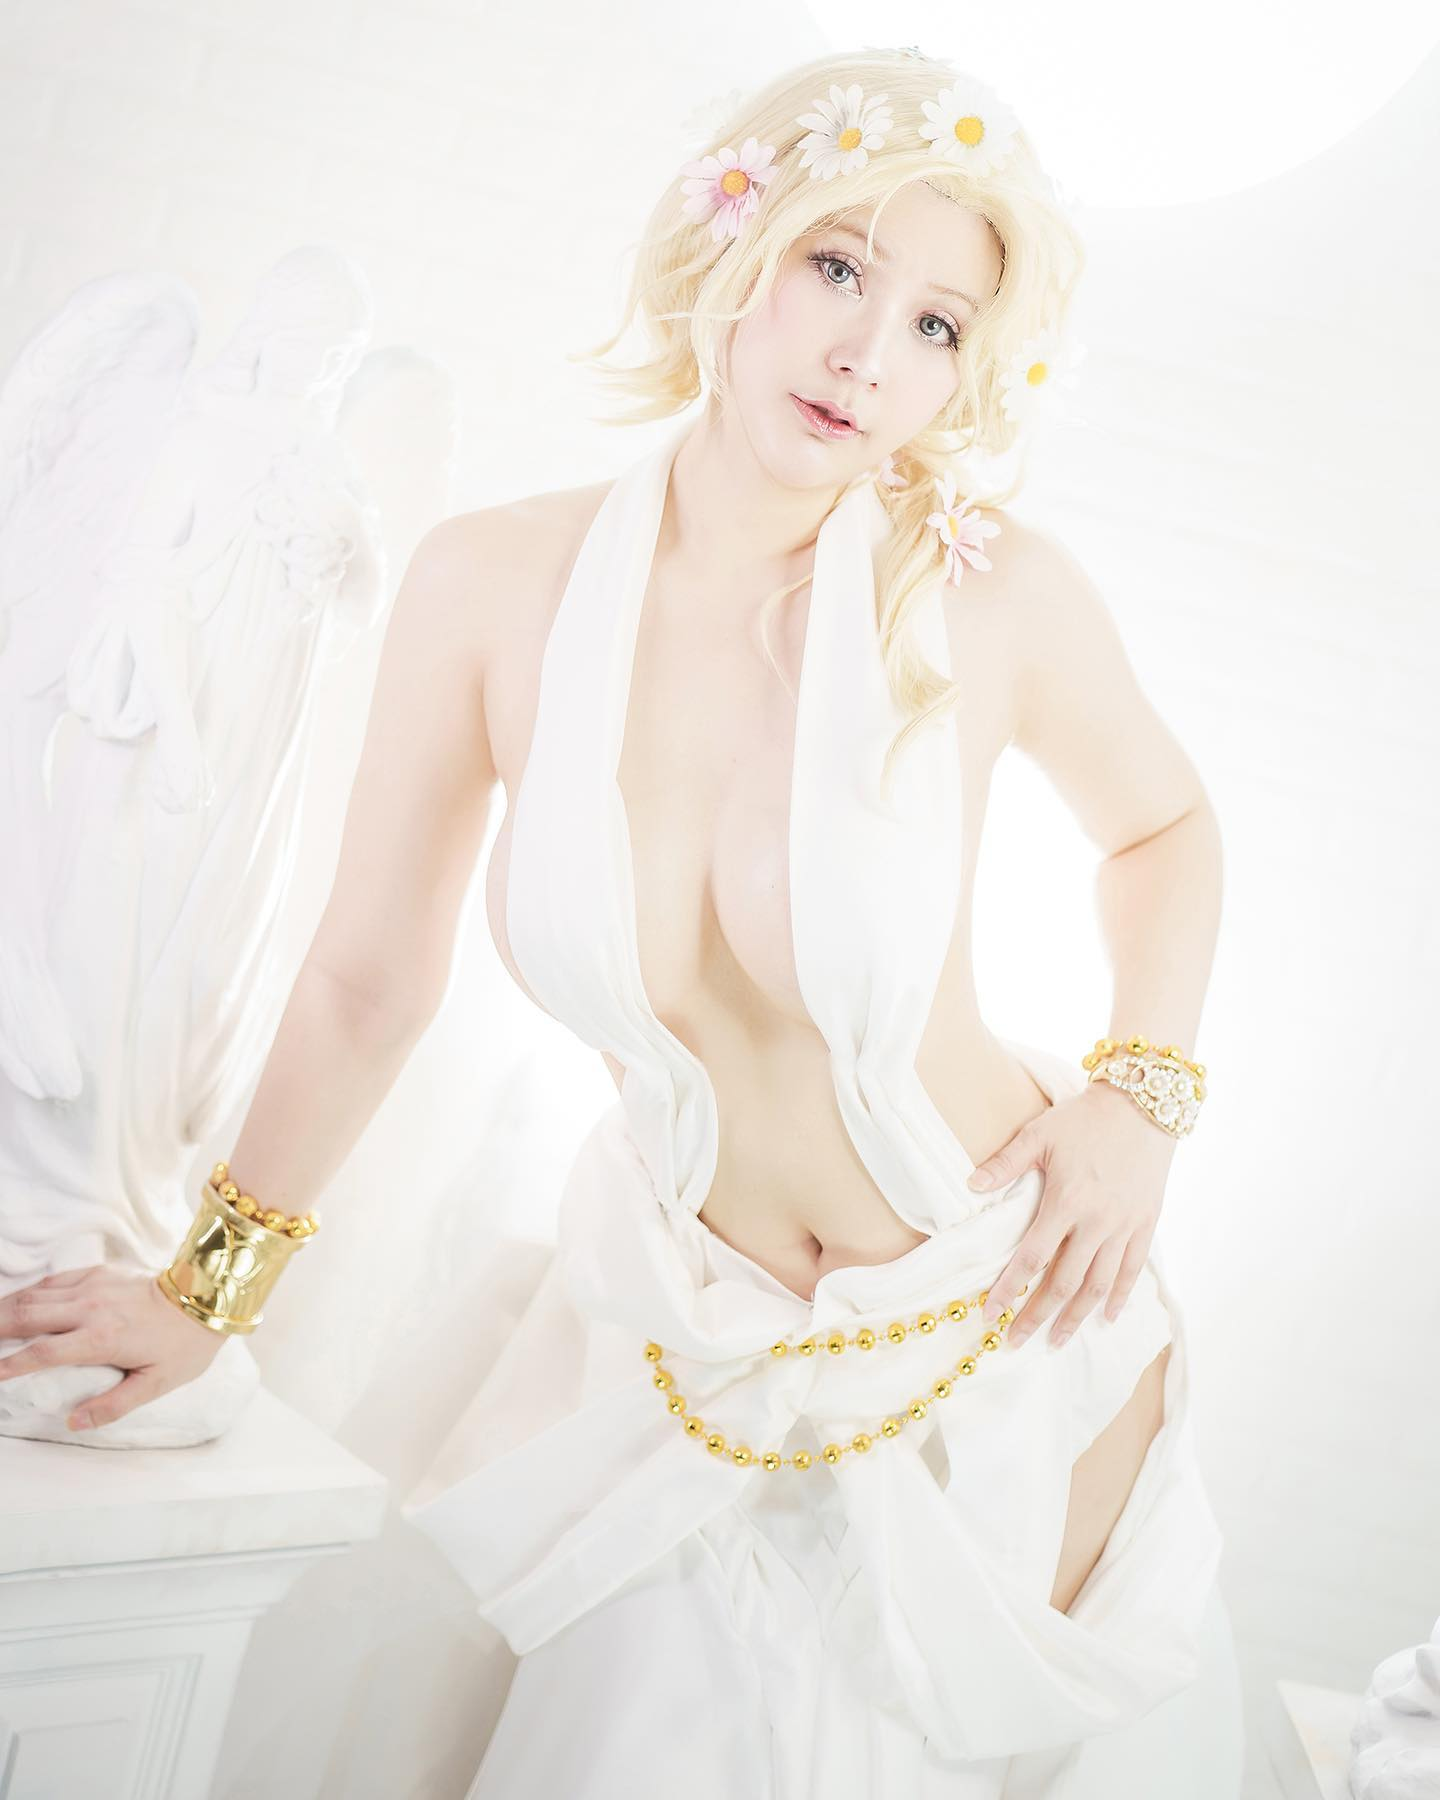 Aphrodite : Record of Ragnarok  / Layer by Onnies / Credit Photo by RAIZENZ